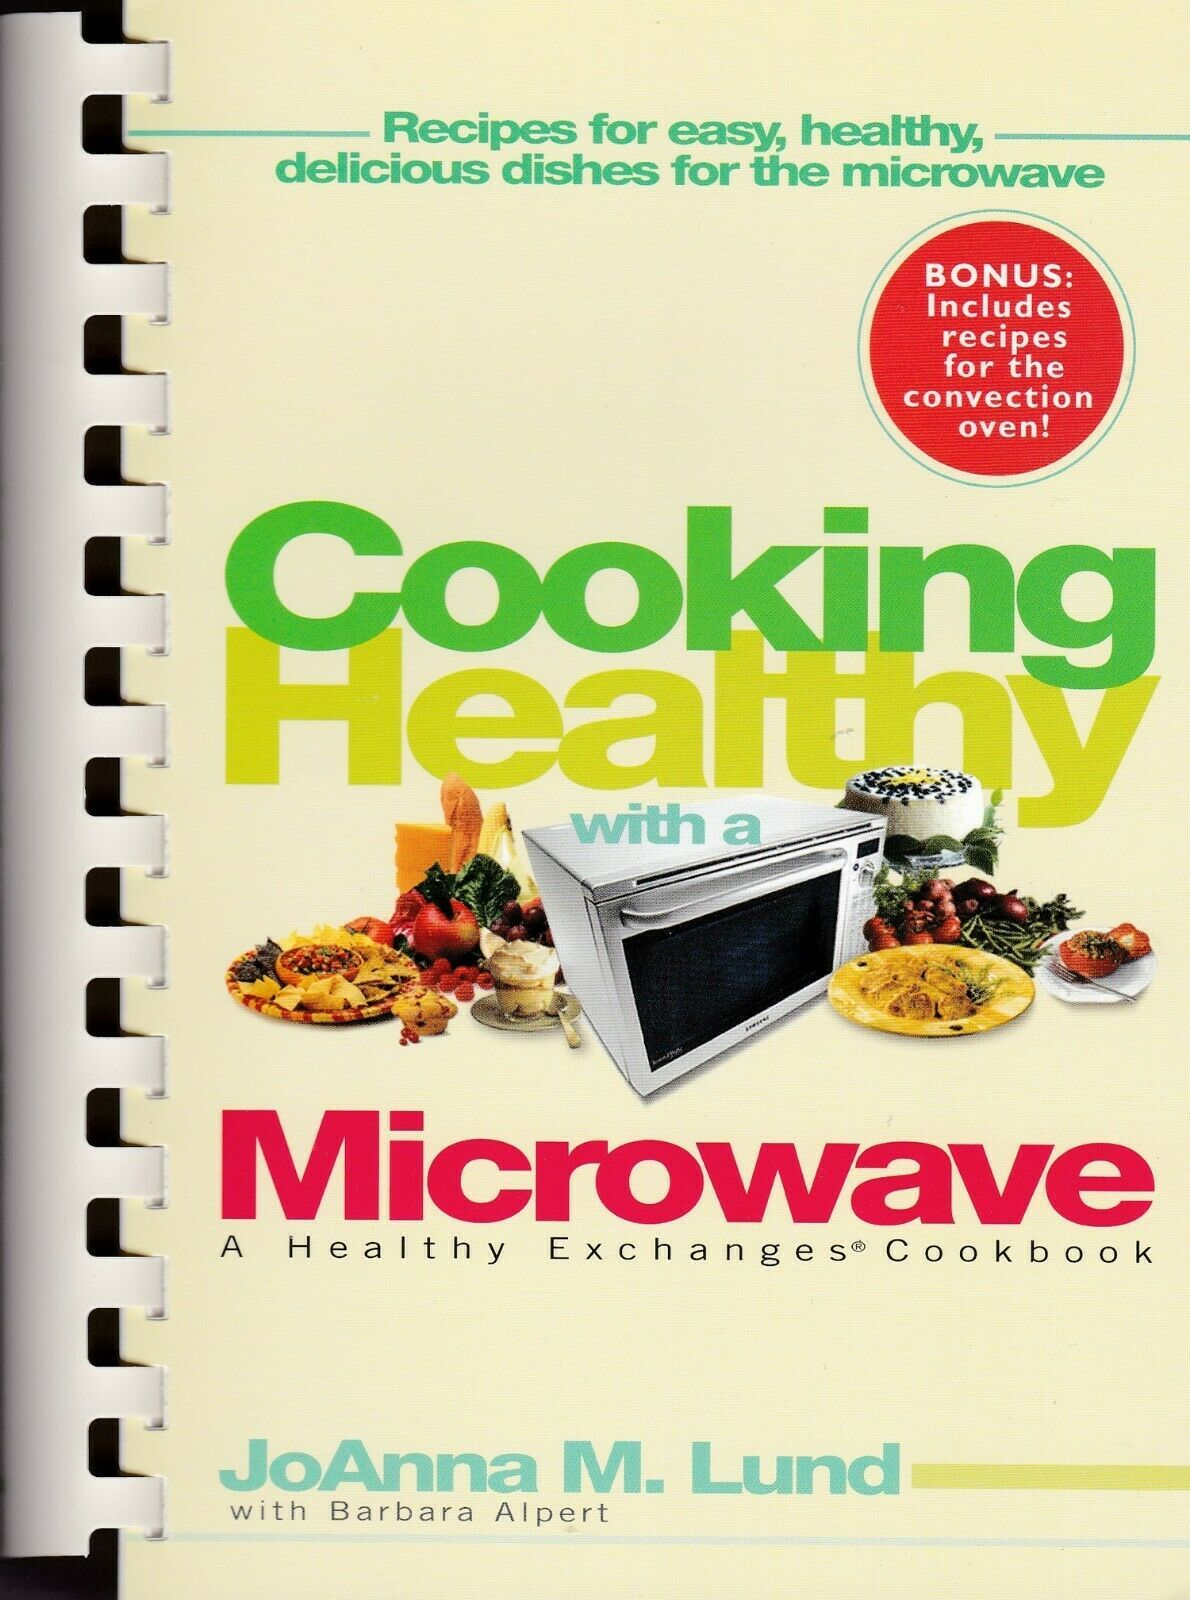 Cooking Healthy With a Microwave: A Healthy Exchanges Cookbook Plastic Comb 2005